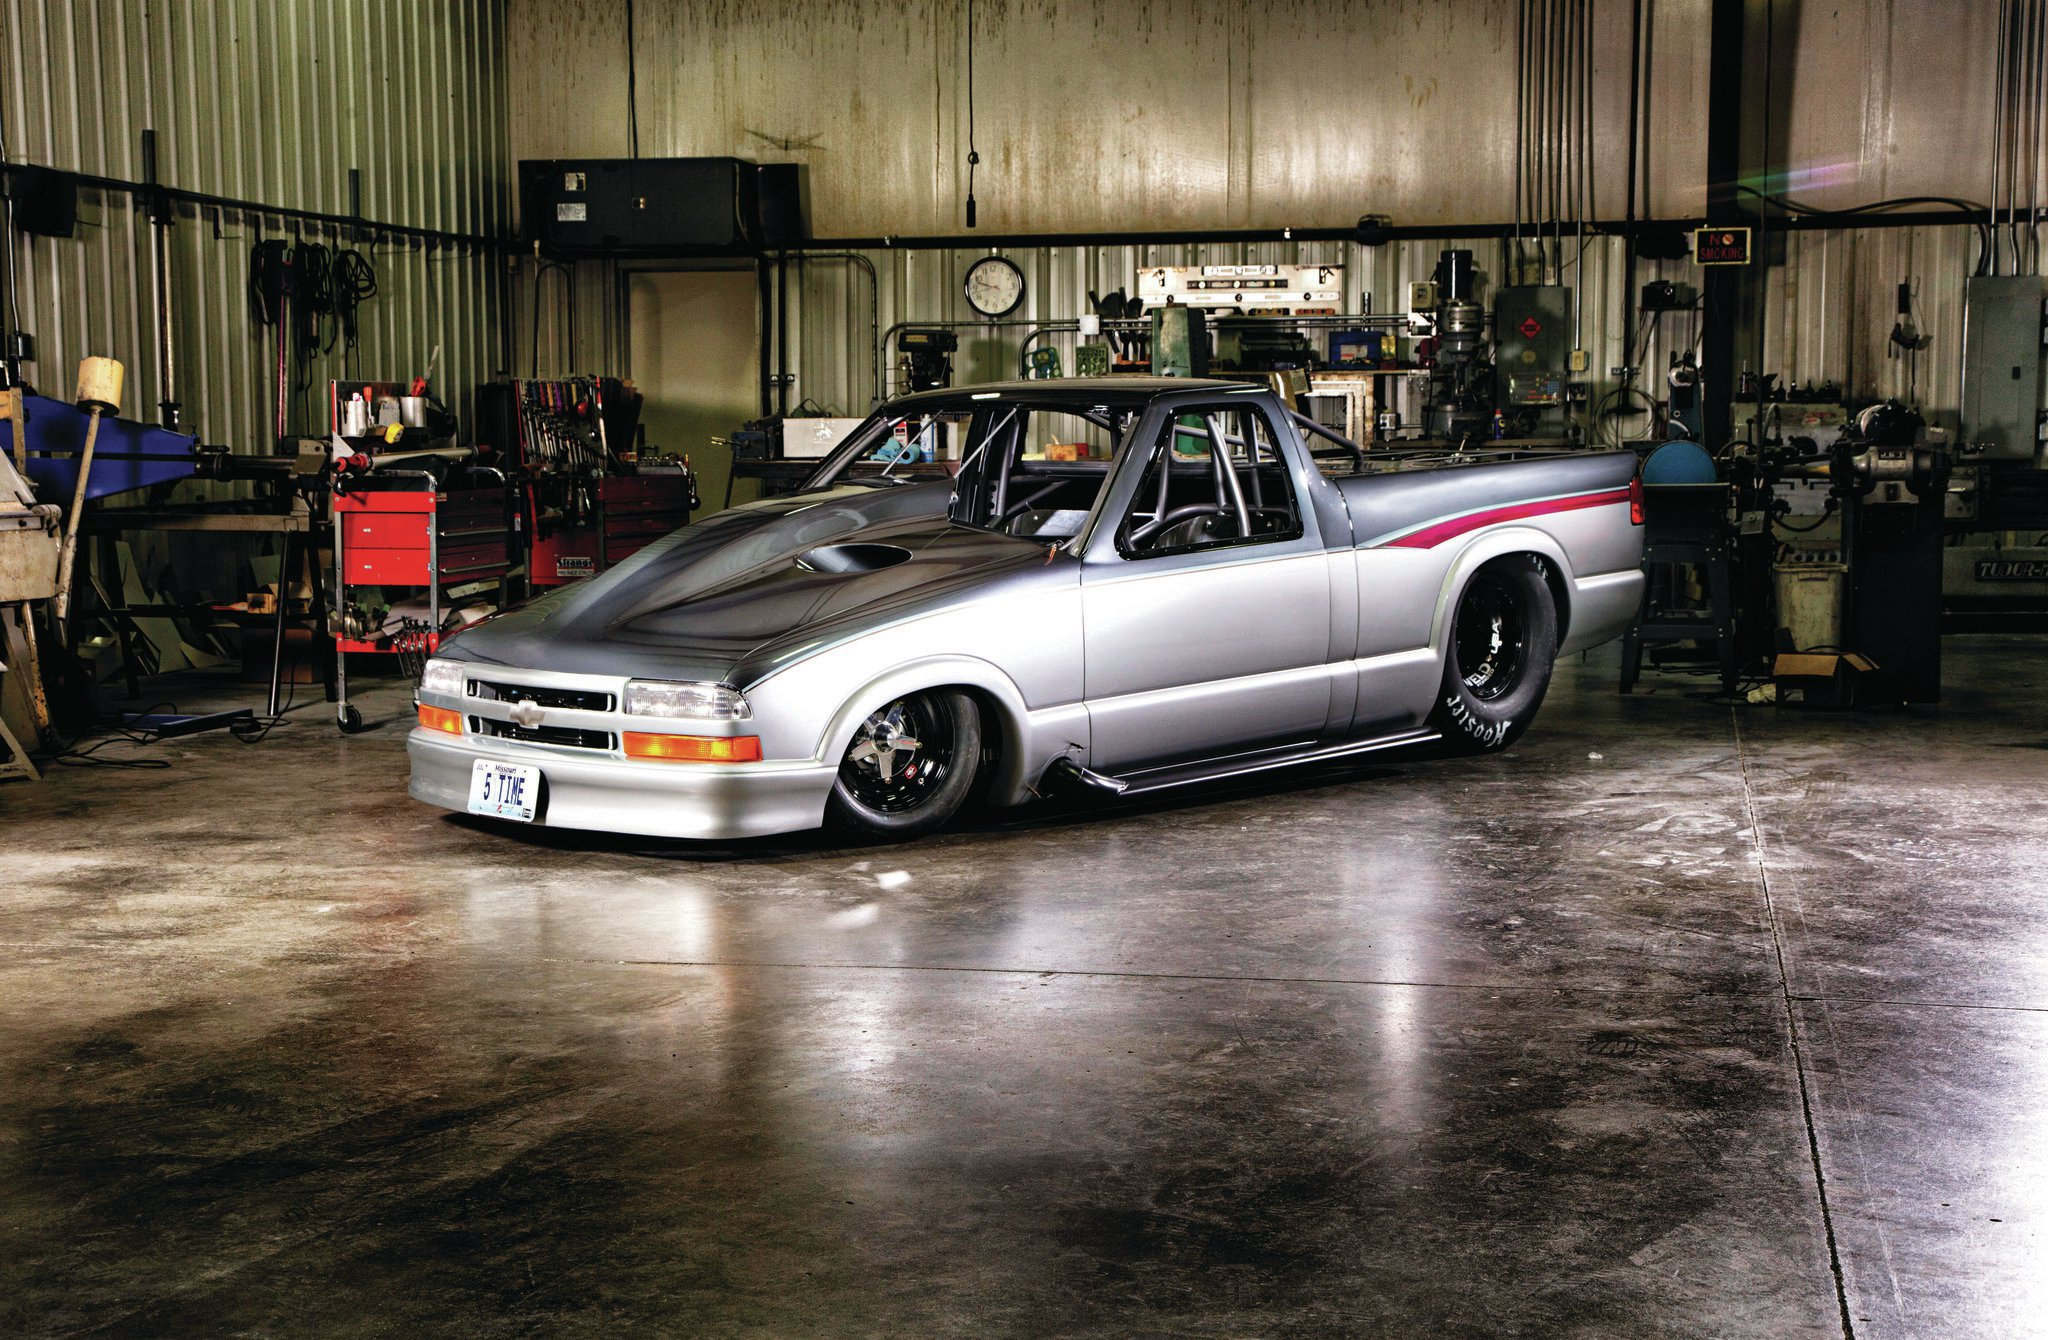 Why an S-10? Five reasons: ideal wheelbase, the steel cab is compact, the bedsides could be raised to fit 36-inch slicks, NHRA Pro Stock racing developed the aero package, and Larson could haul tools and parts in (or on) the bed instead of a pulling trailer.